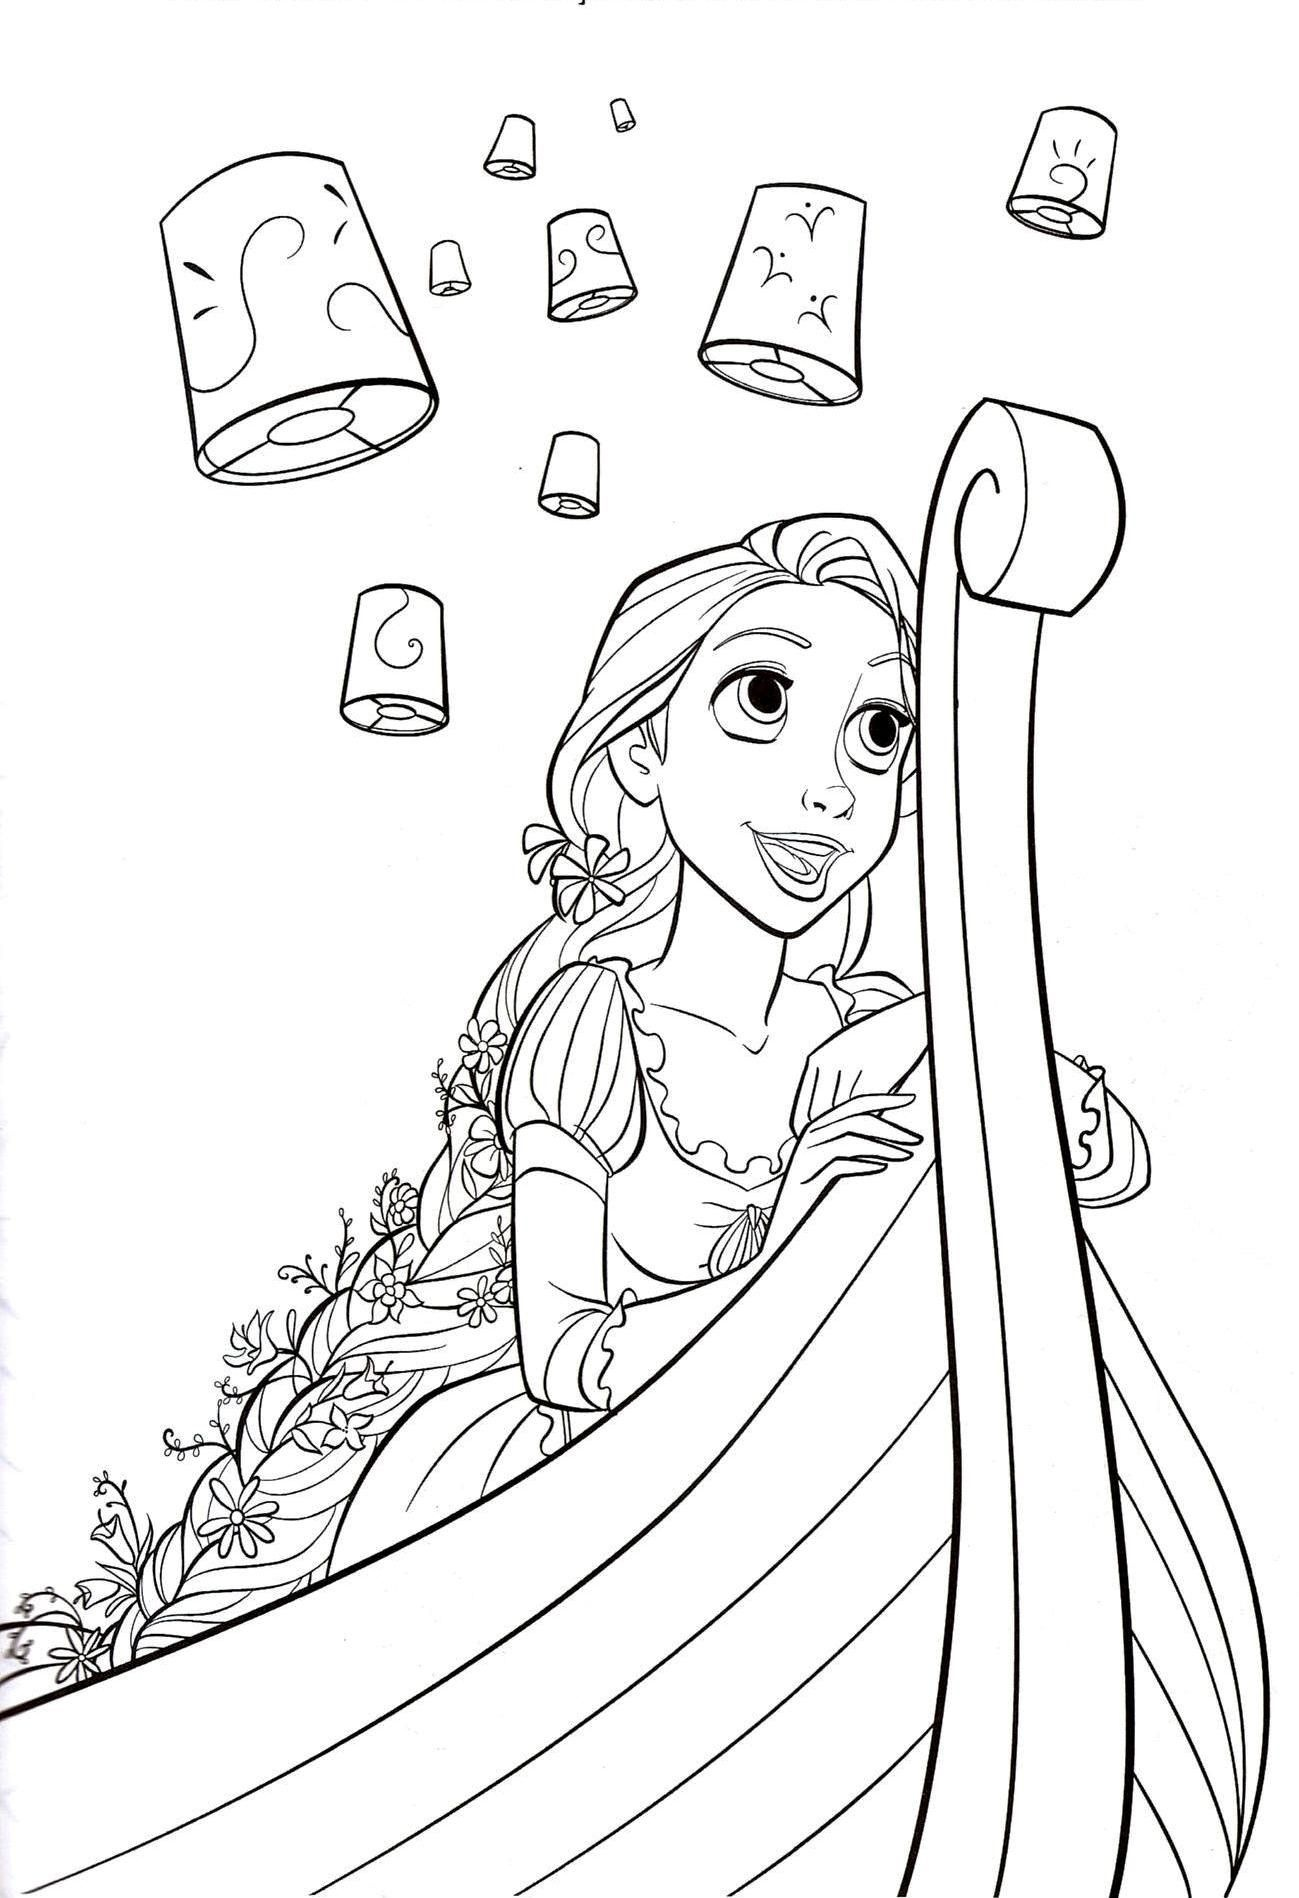 Flynn Rider And Rapunzel Coloring Page | Free Printable ...